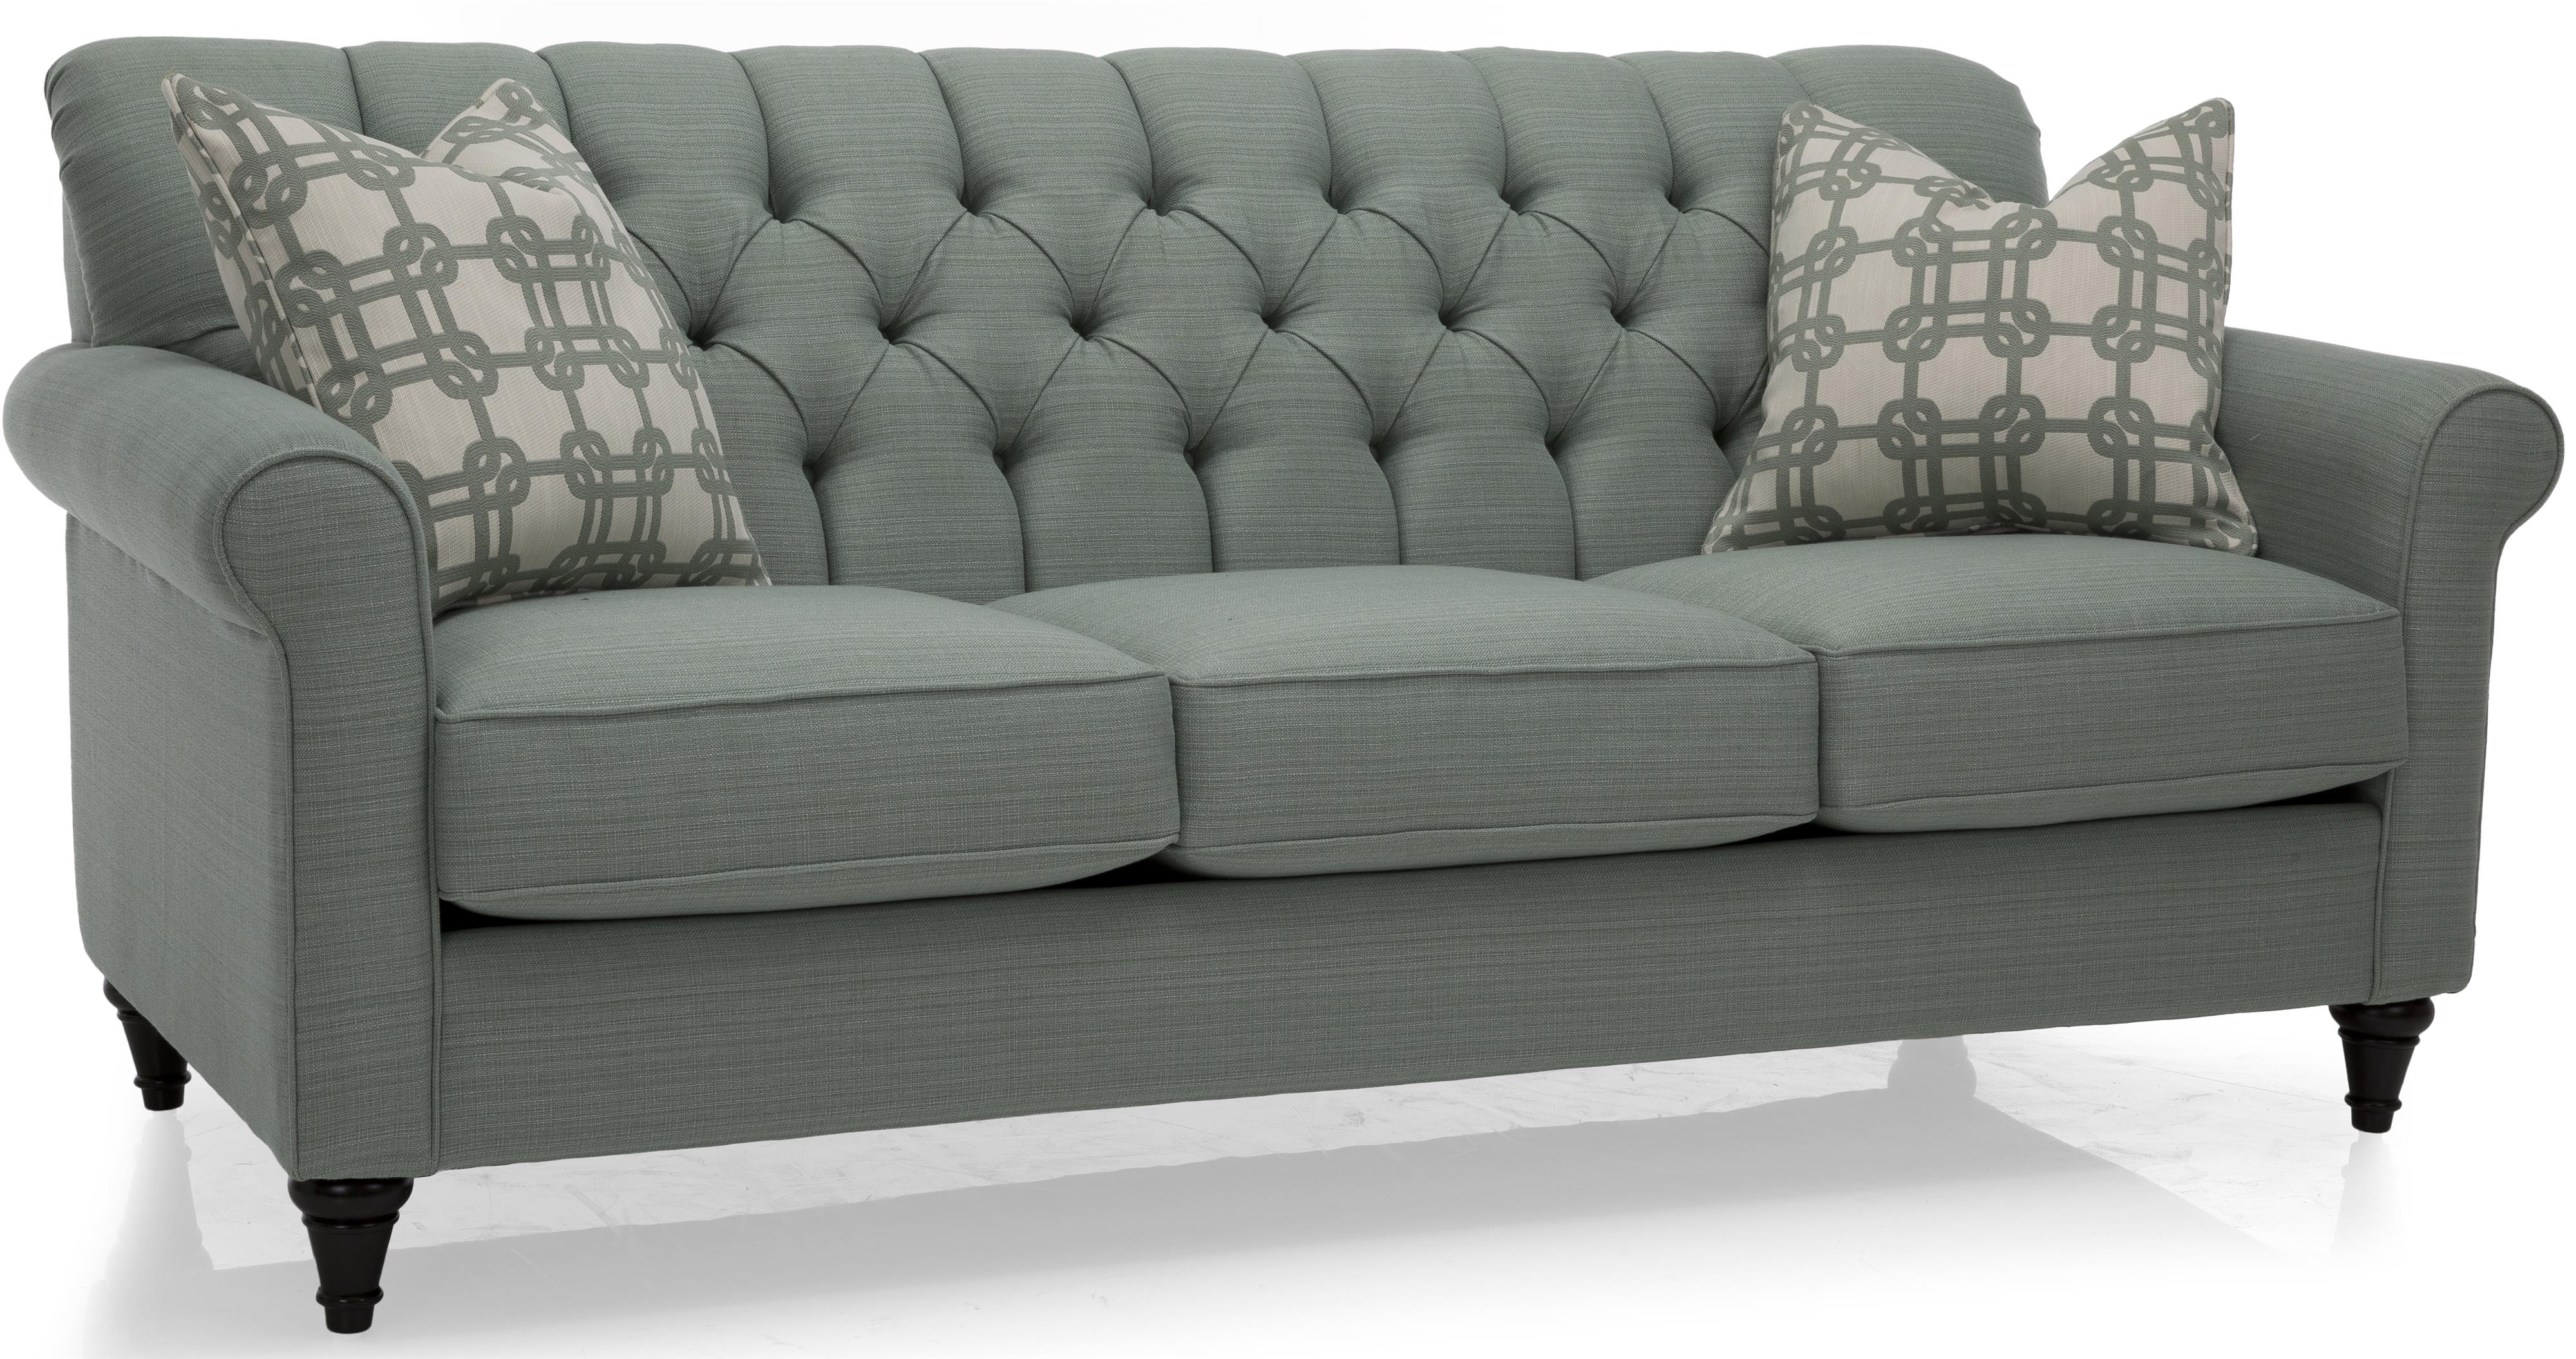 2478 Sofa by Decor-Rest at Rooms for Less